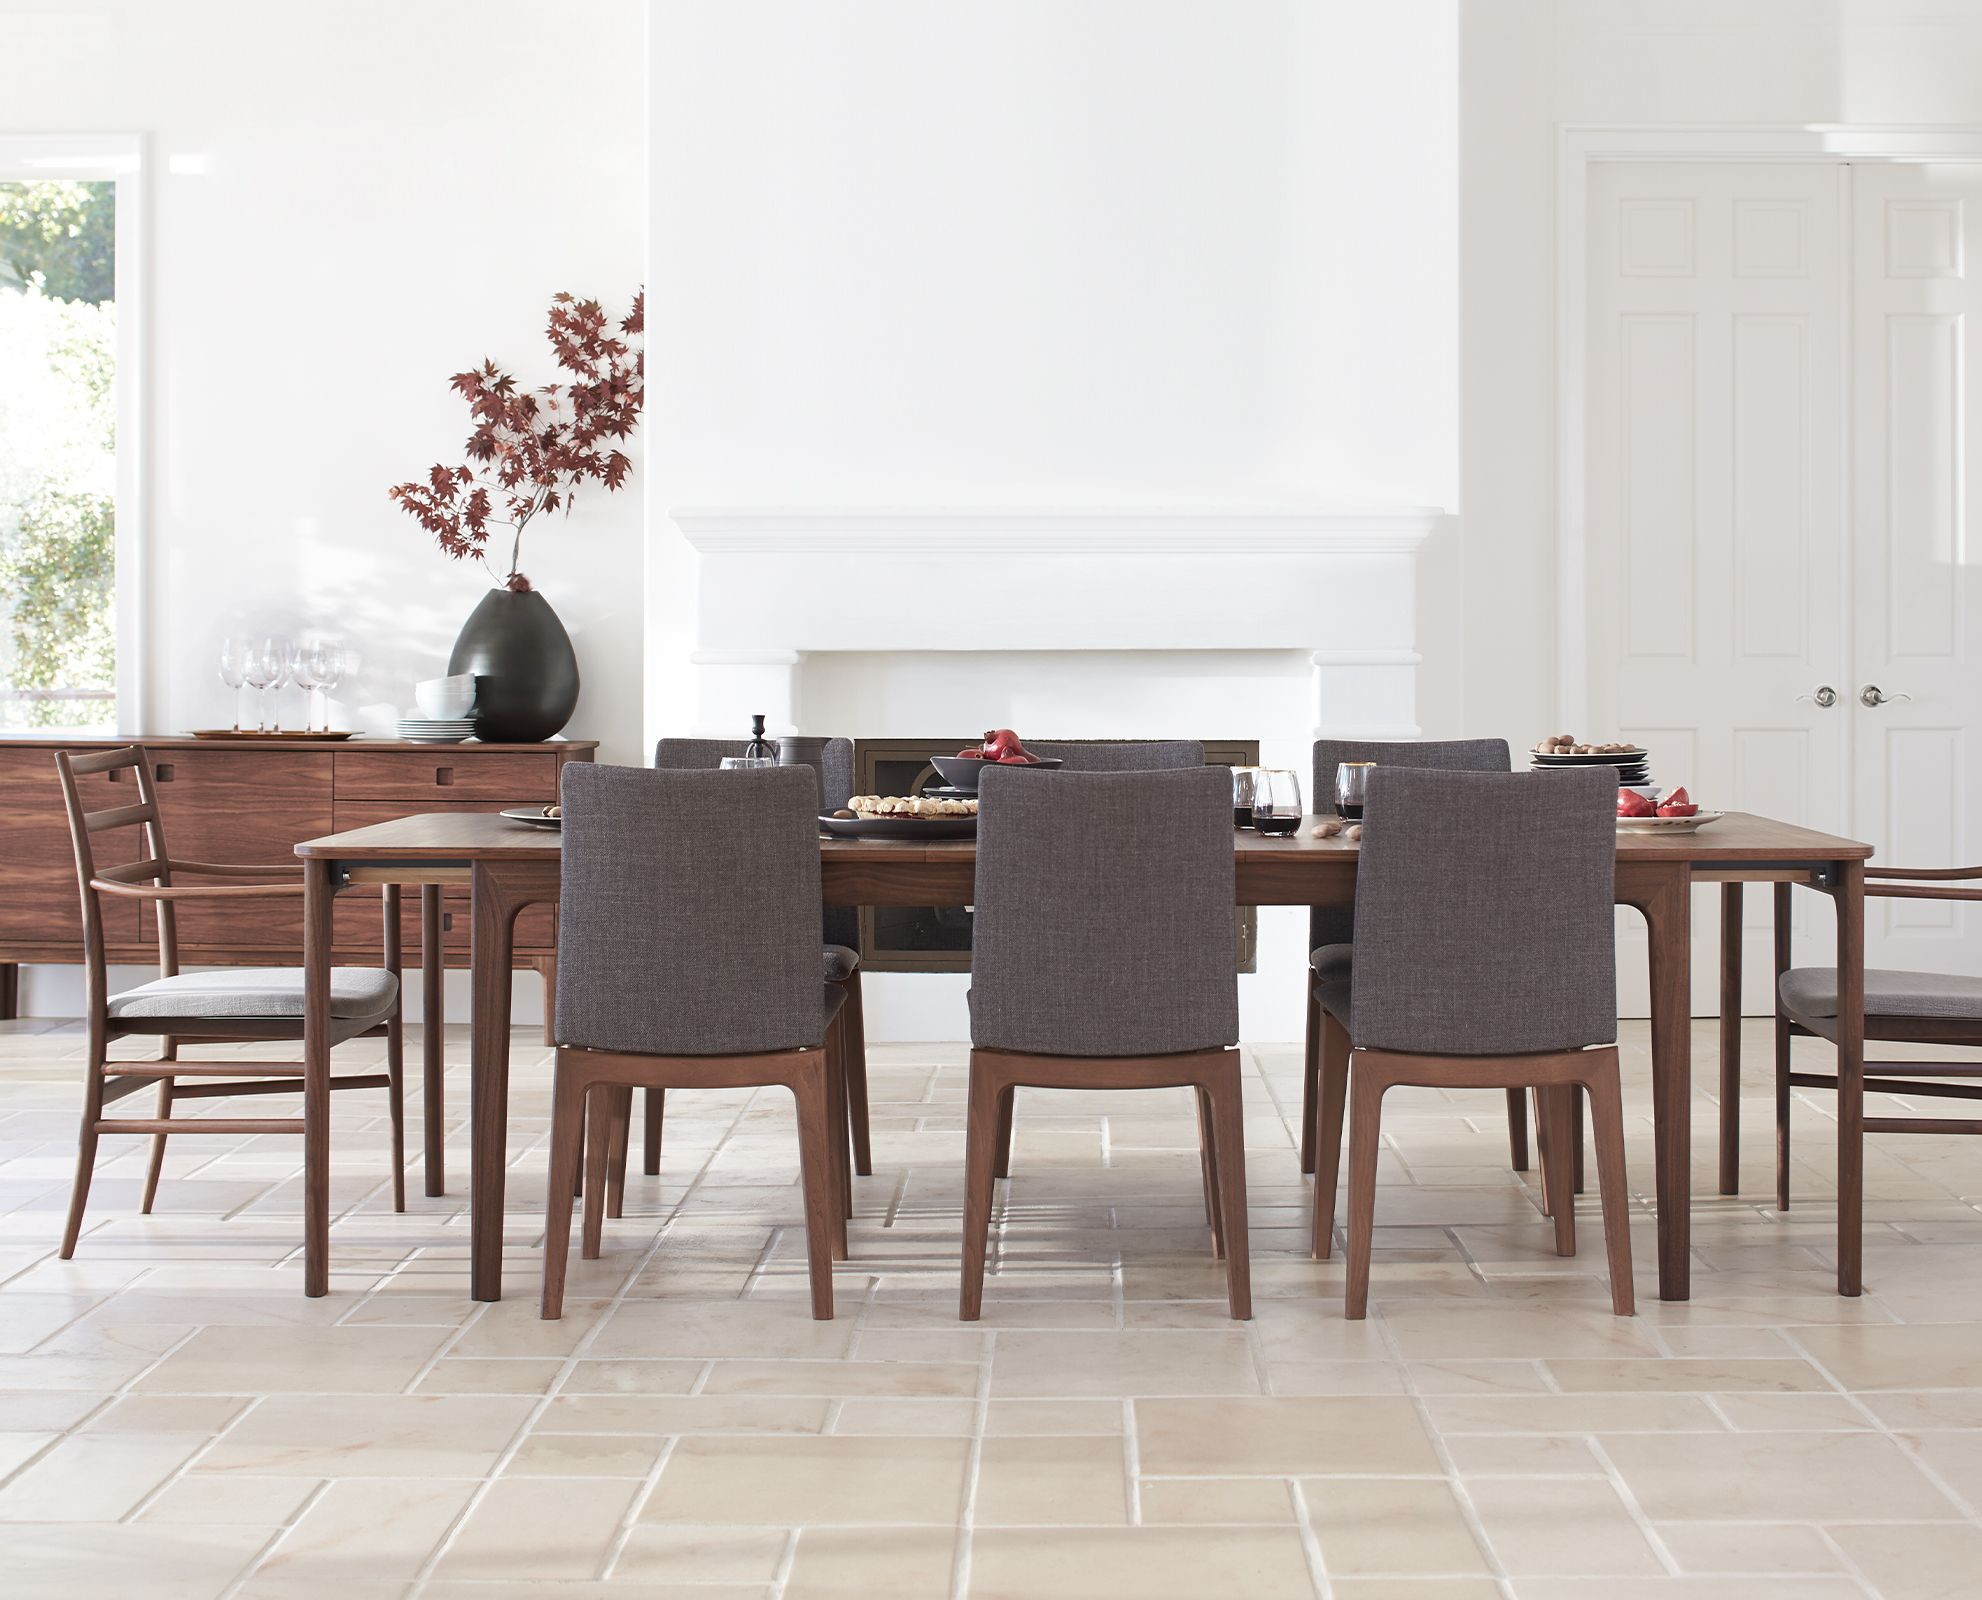 Sundby Dining Table From Dania Furniture Co Danishfurniture Madeindenmark Scandistyle Modern Interiors